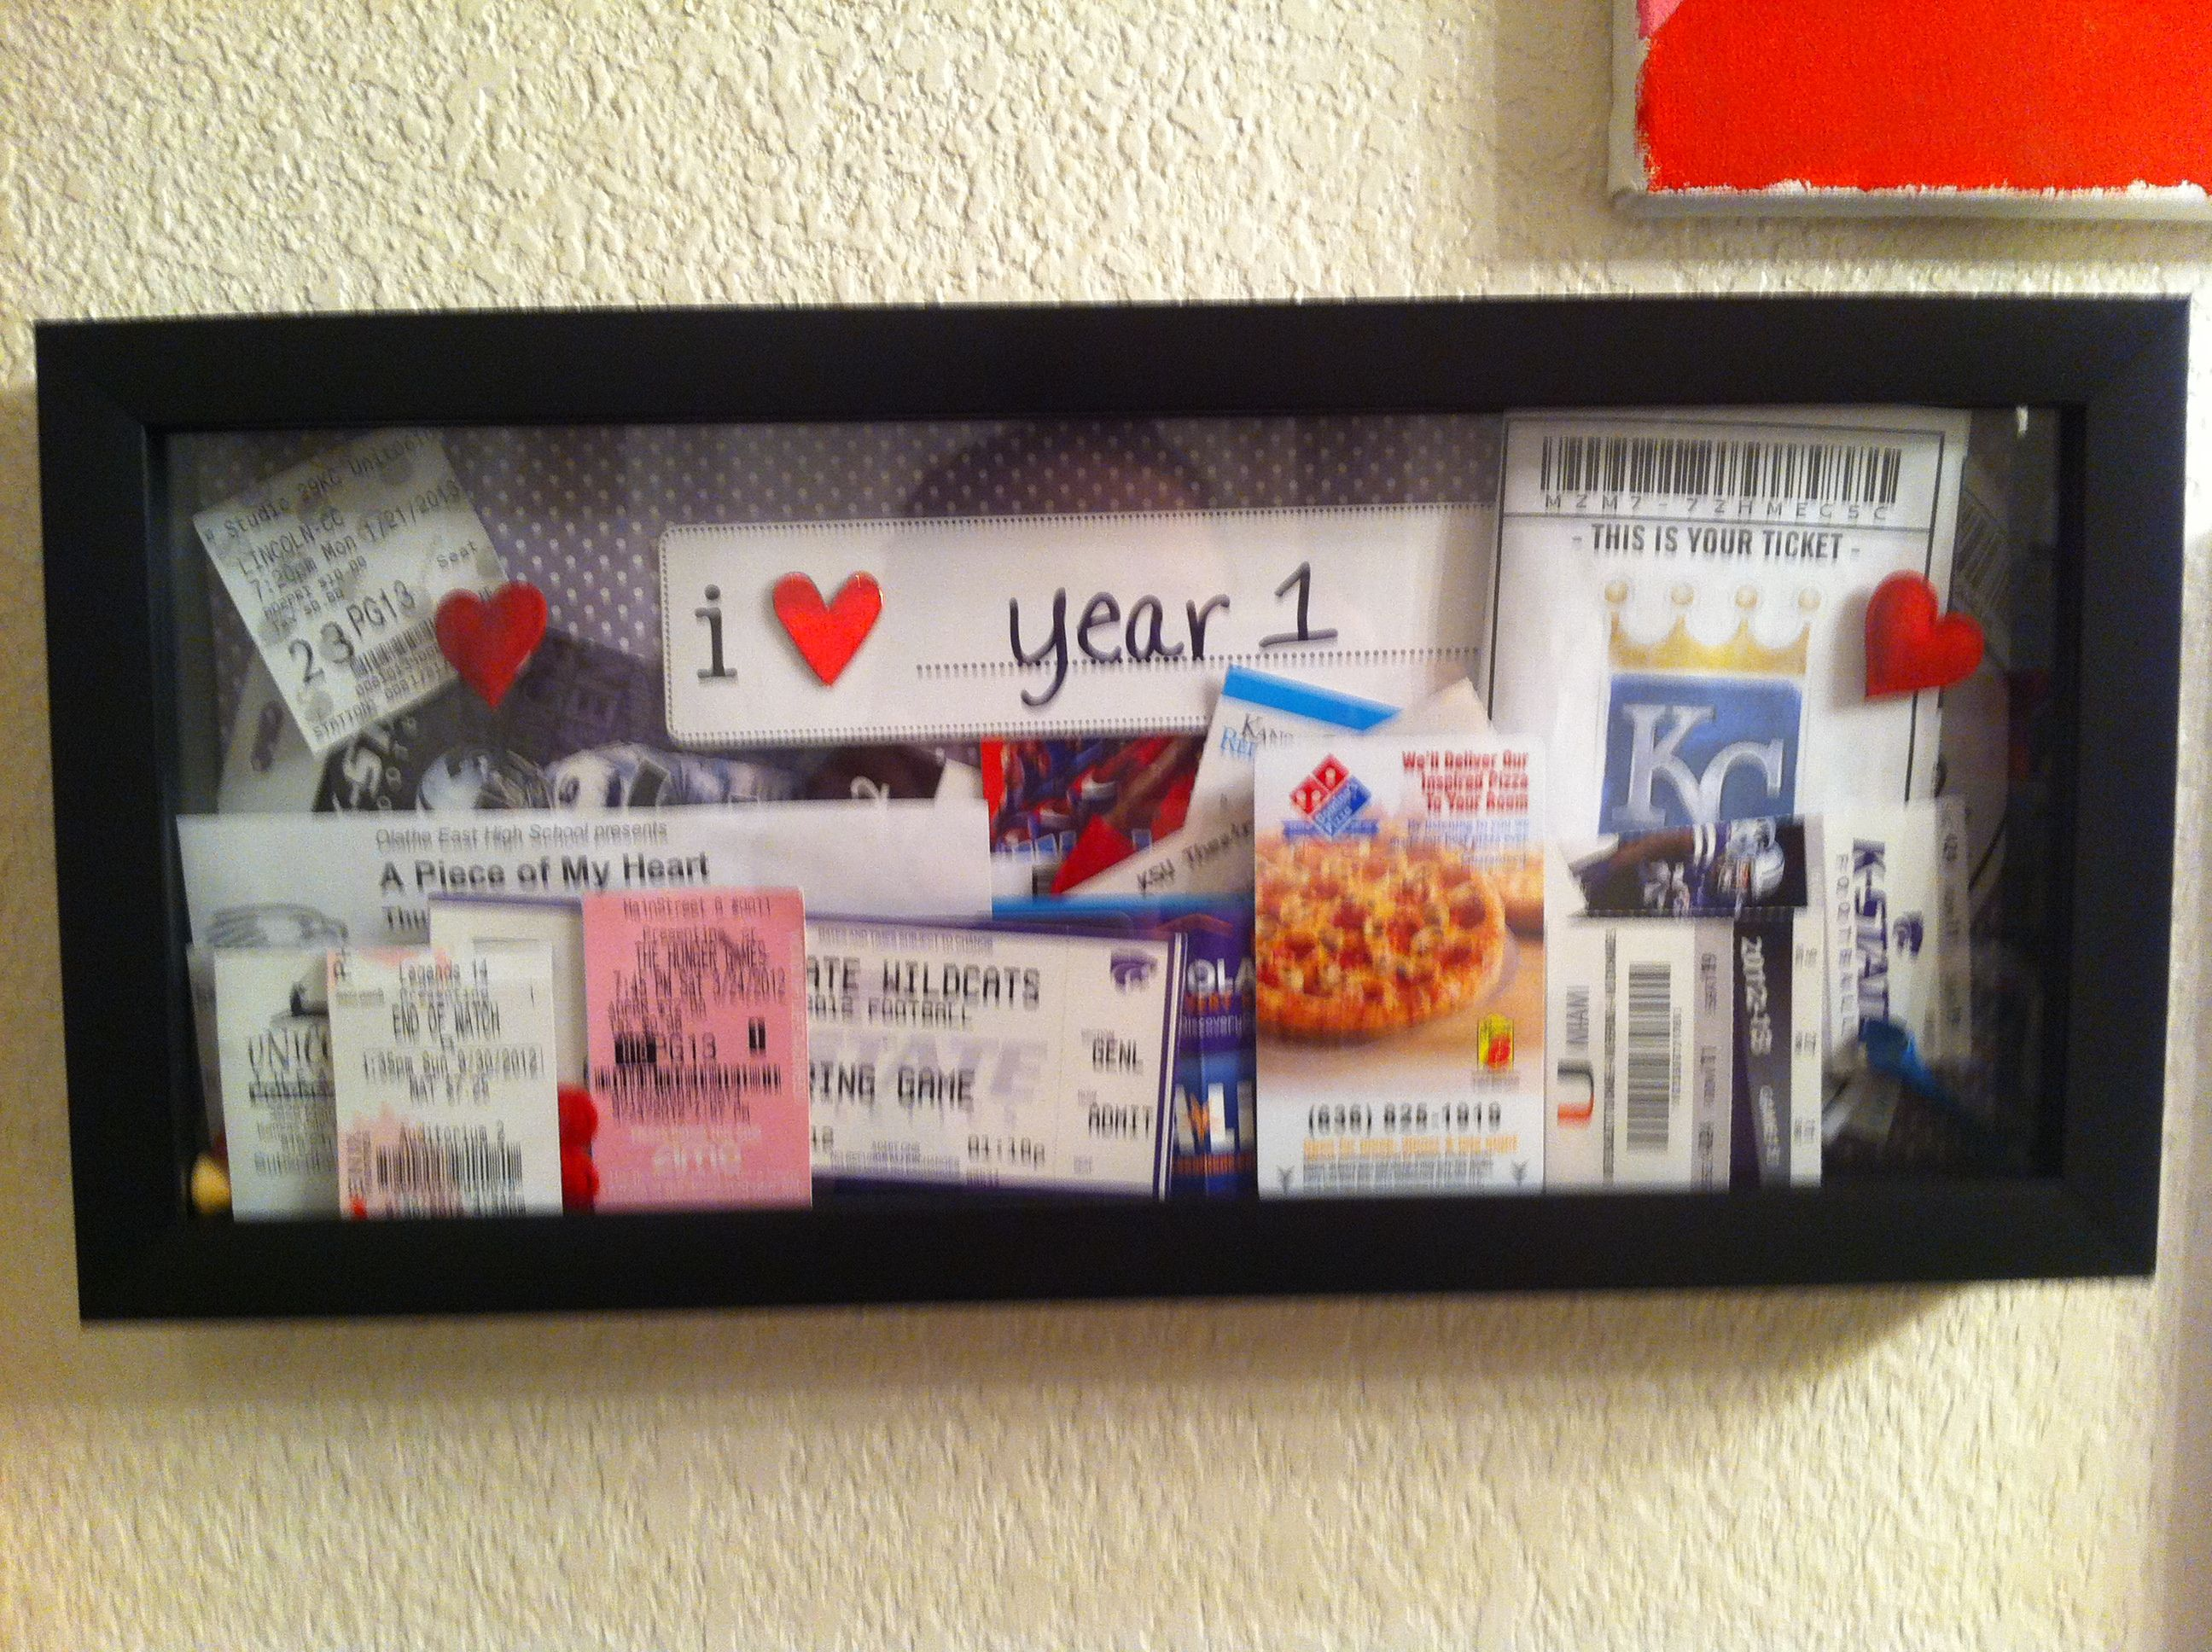 Anniversary present for ryan shadow box with ticket stubs from